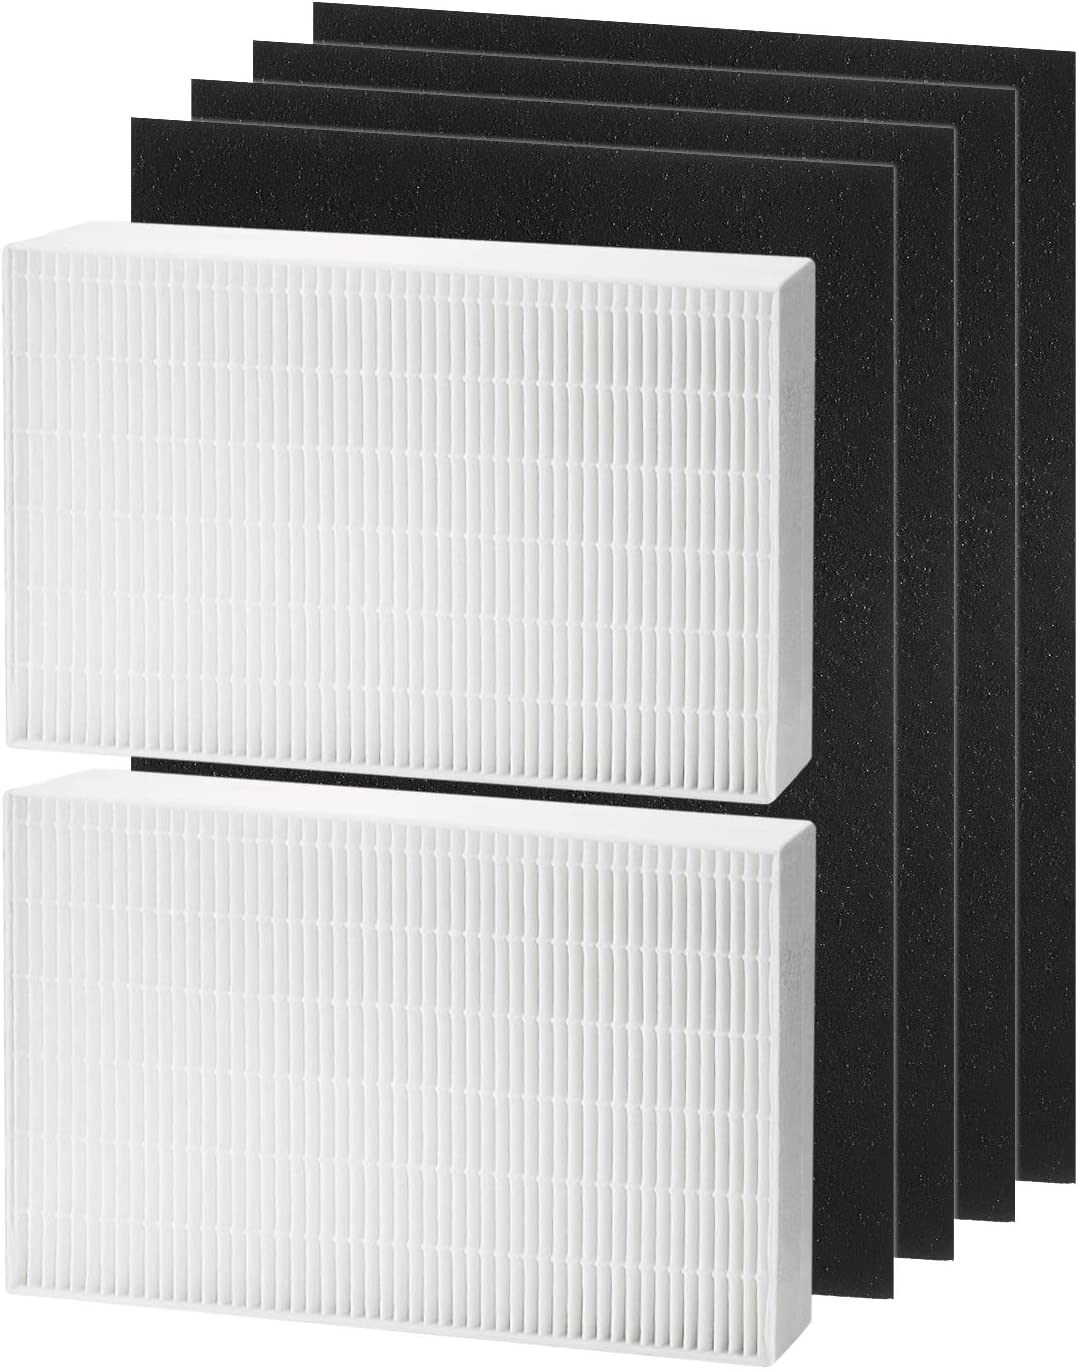 isinlive 2 True HEPA Filter Replacement Compatible with Honeywell HPA200 Series Air Purifier, Plus 4 Precut Activated Carbon Pre Filters, Filter R, HRF-R2, HPA200, HPA201, HA202, HPA204, HPA250